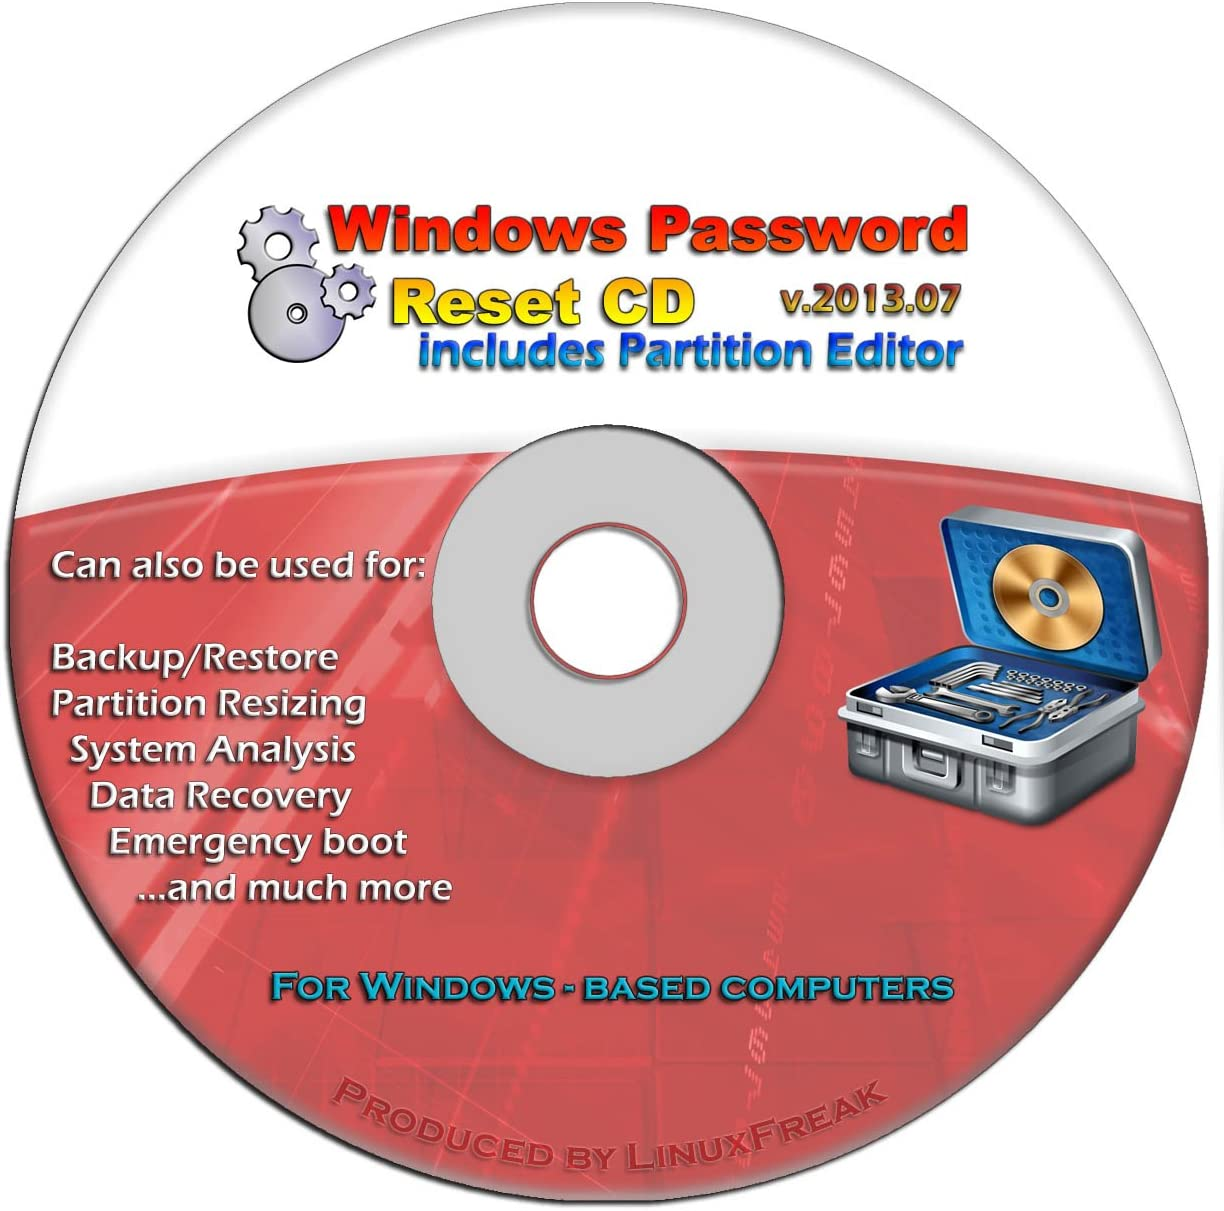 Advanced Recovery Boot Password Reset CD Disc for Windows XP, Vista, 7, 8 (All Versions of Windows - 32 / 64 bit Editions)